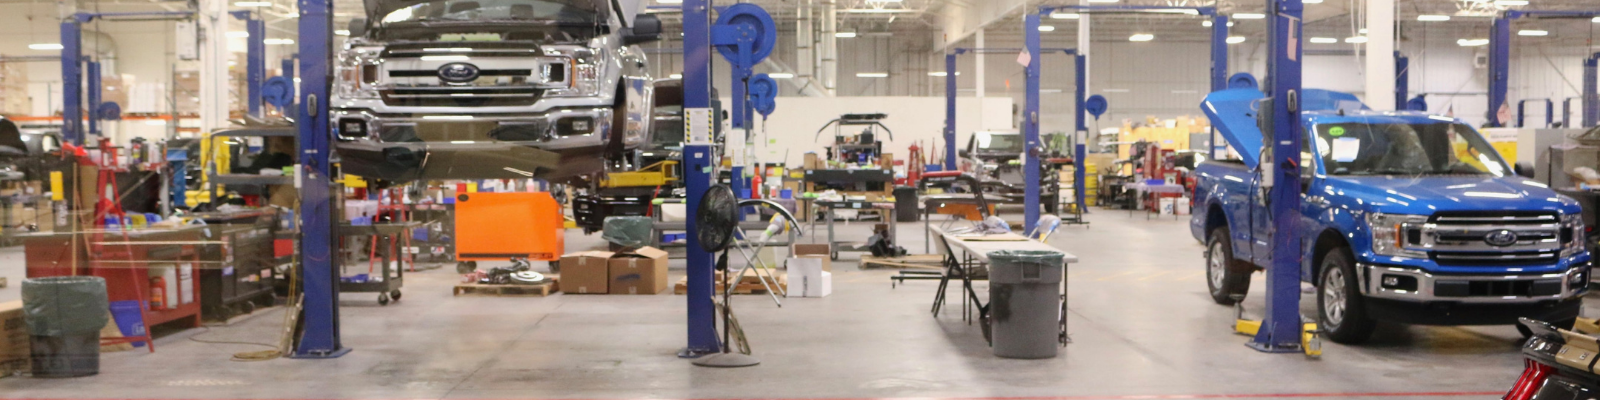 3 Free Resources for Learning How to Repair Your Vehicle Yourself